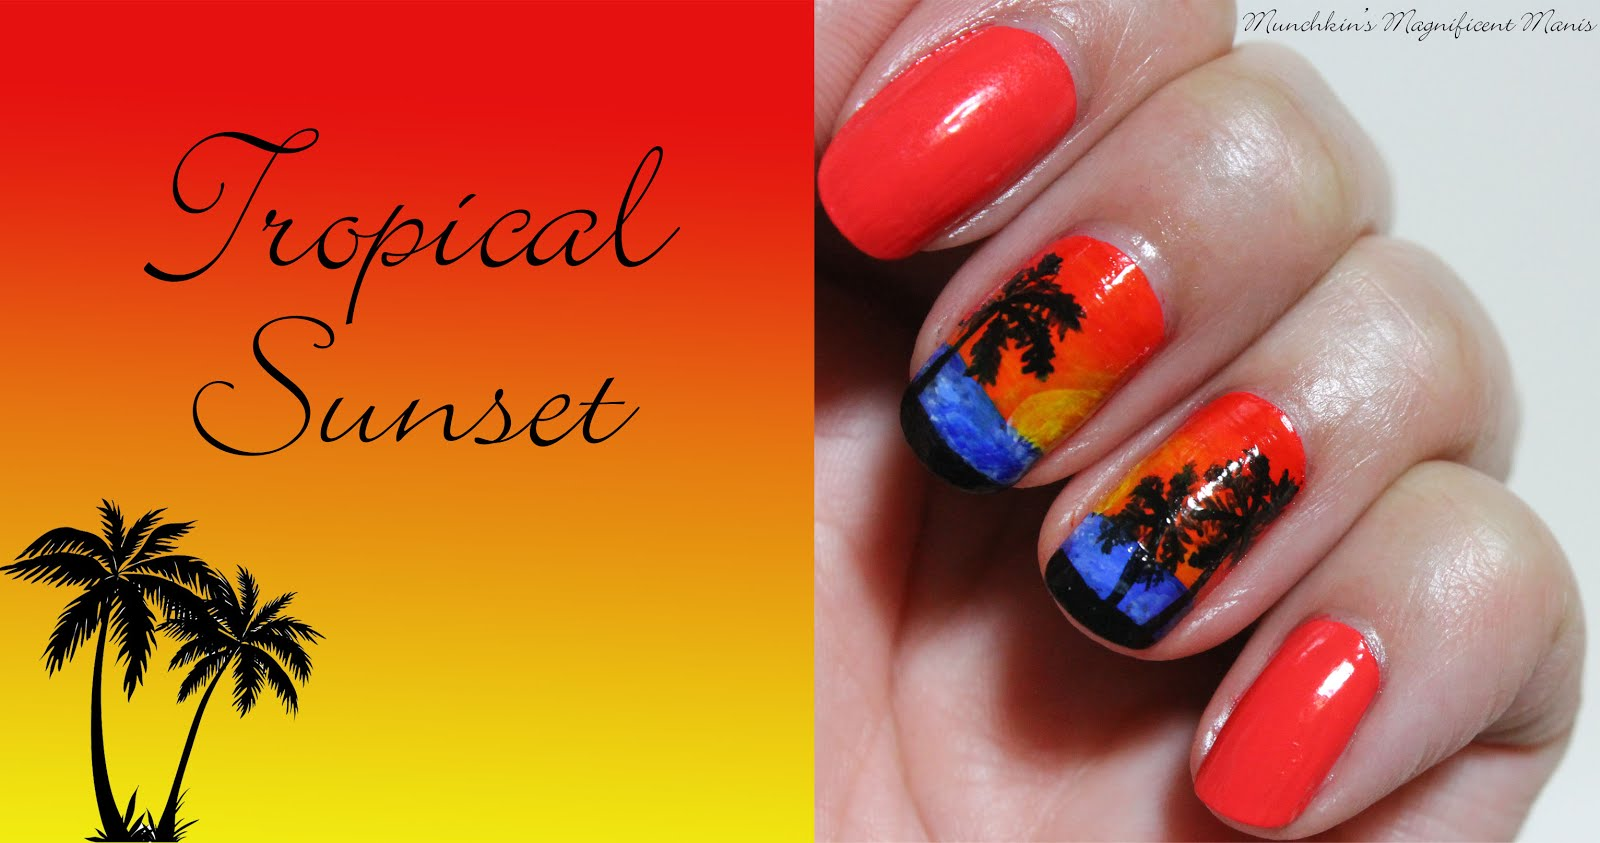 Munchkins Magnificent Manis Tropical Sunset Tropical Nail Design